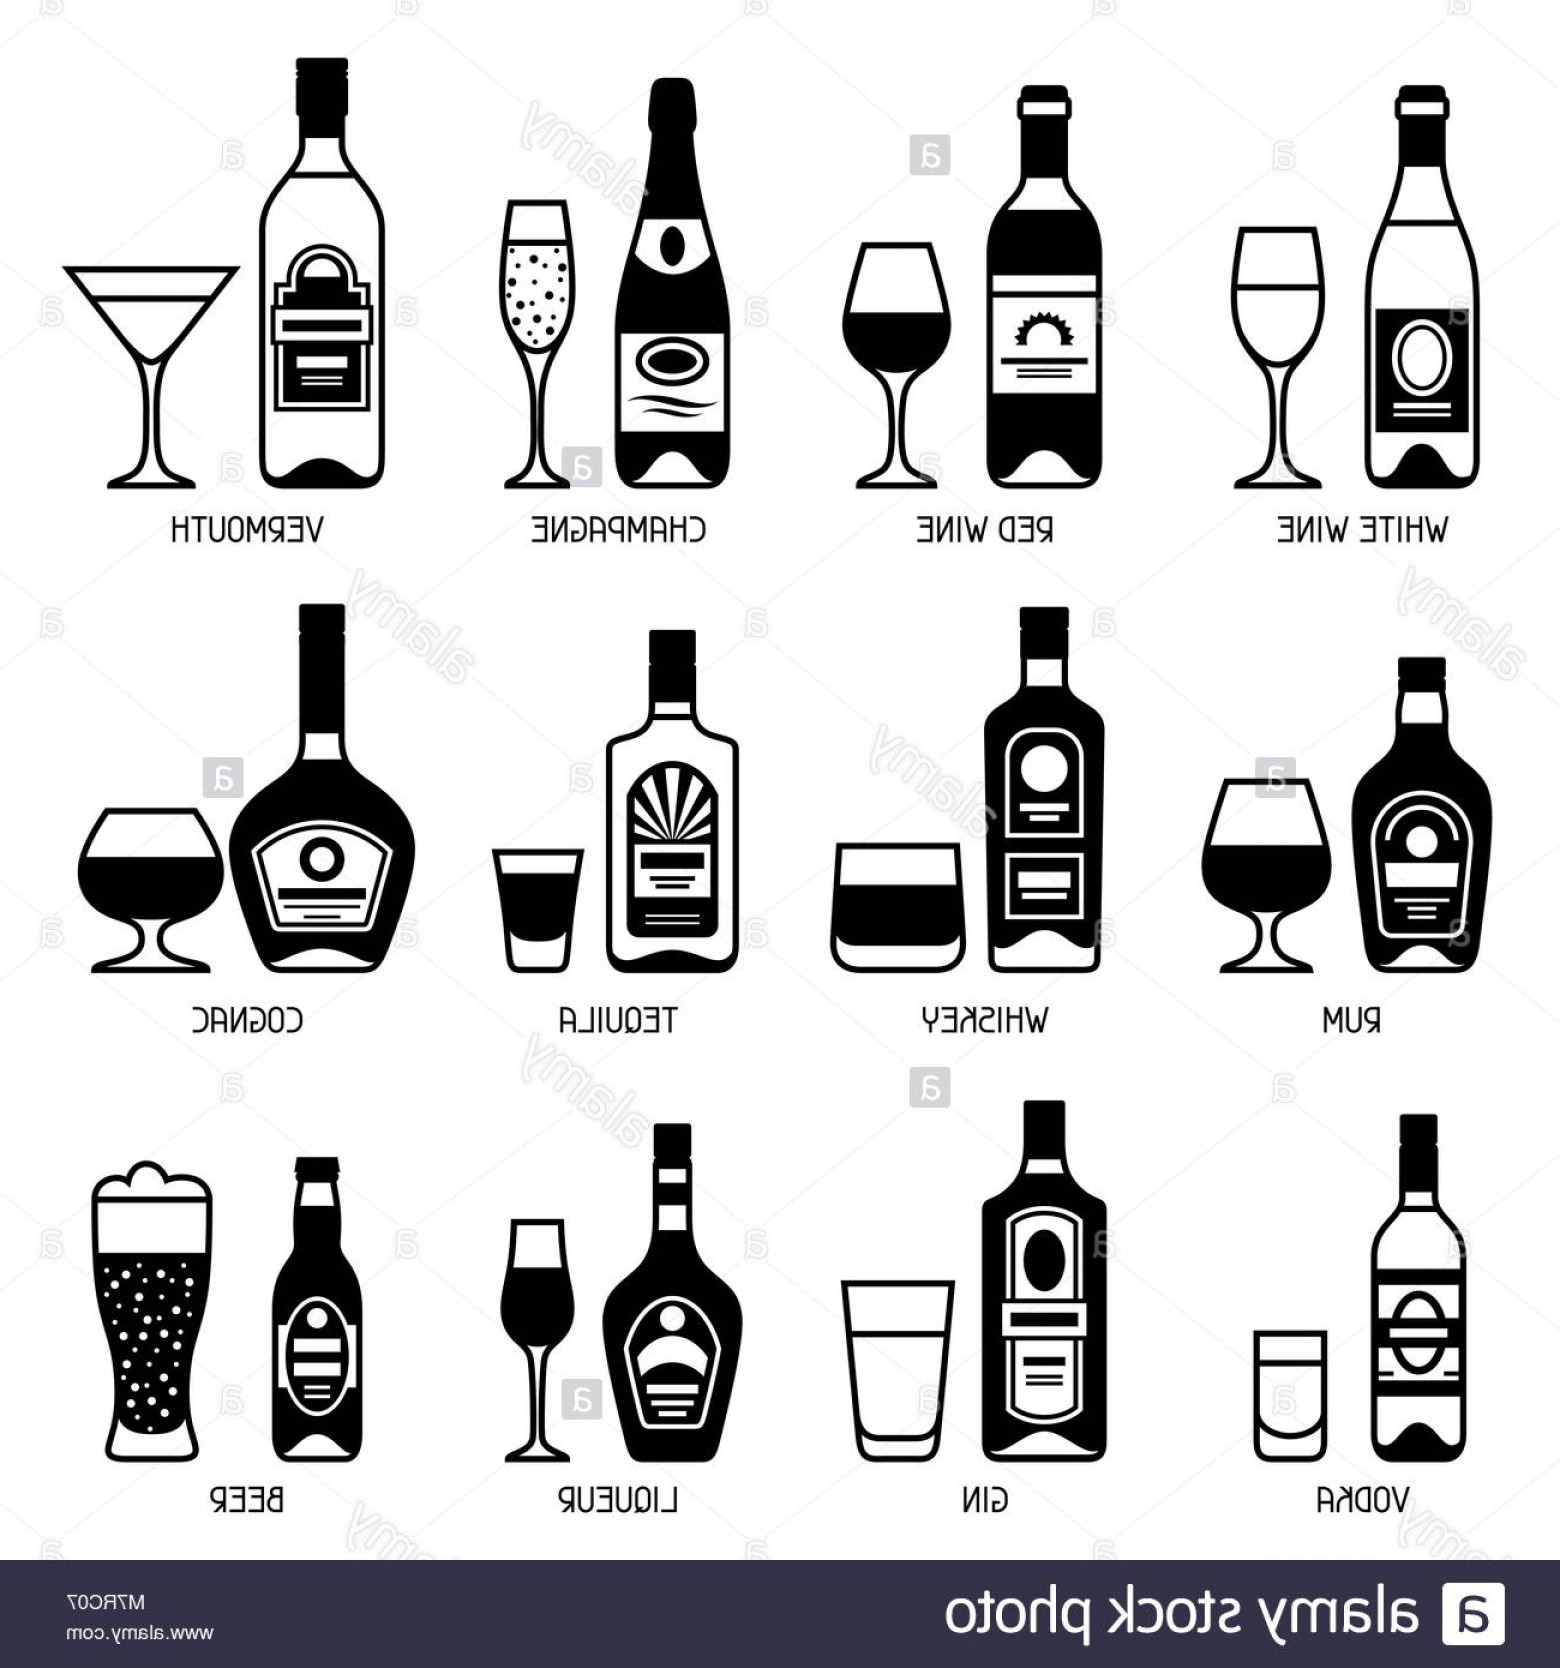 Booze Bottle Vector: Stock Photo Alcohol Drinks Icon Set Bottles Glasses For Restaurants And Bars